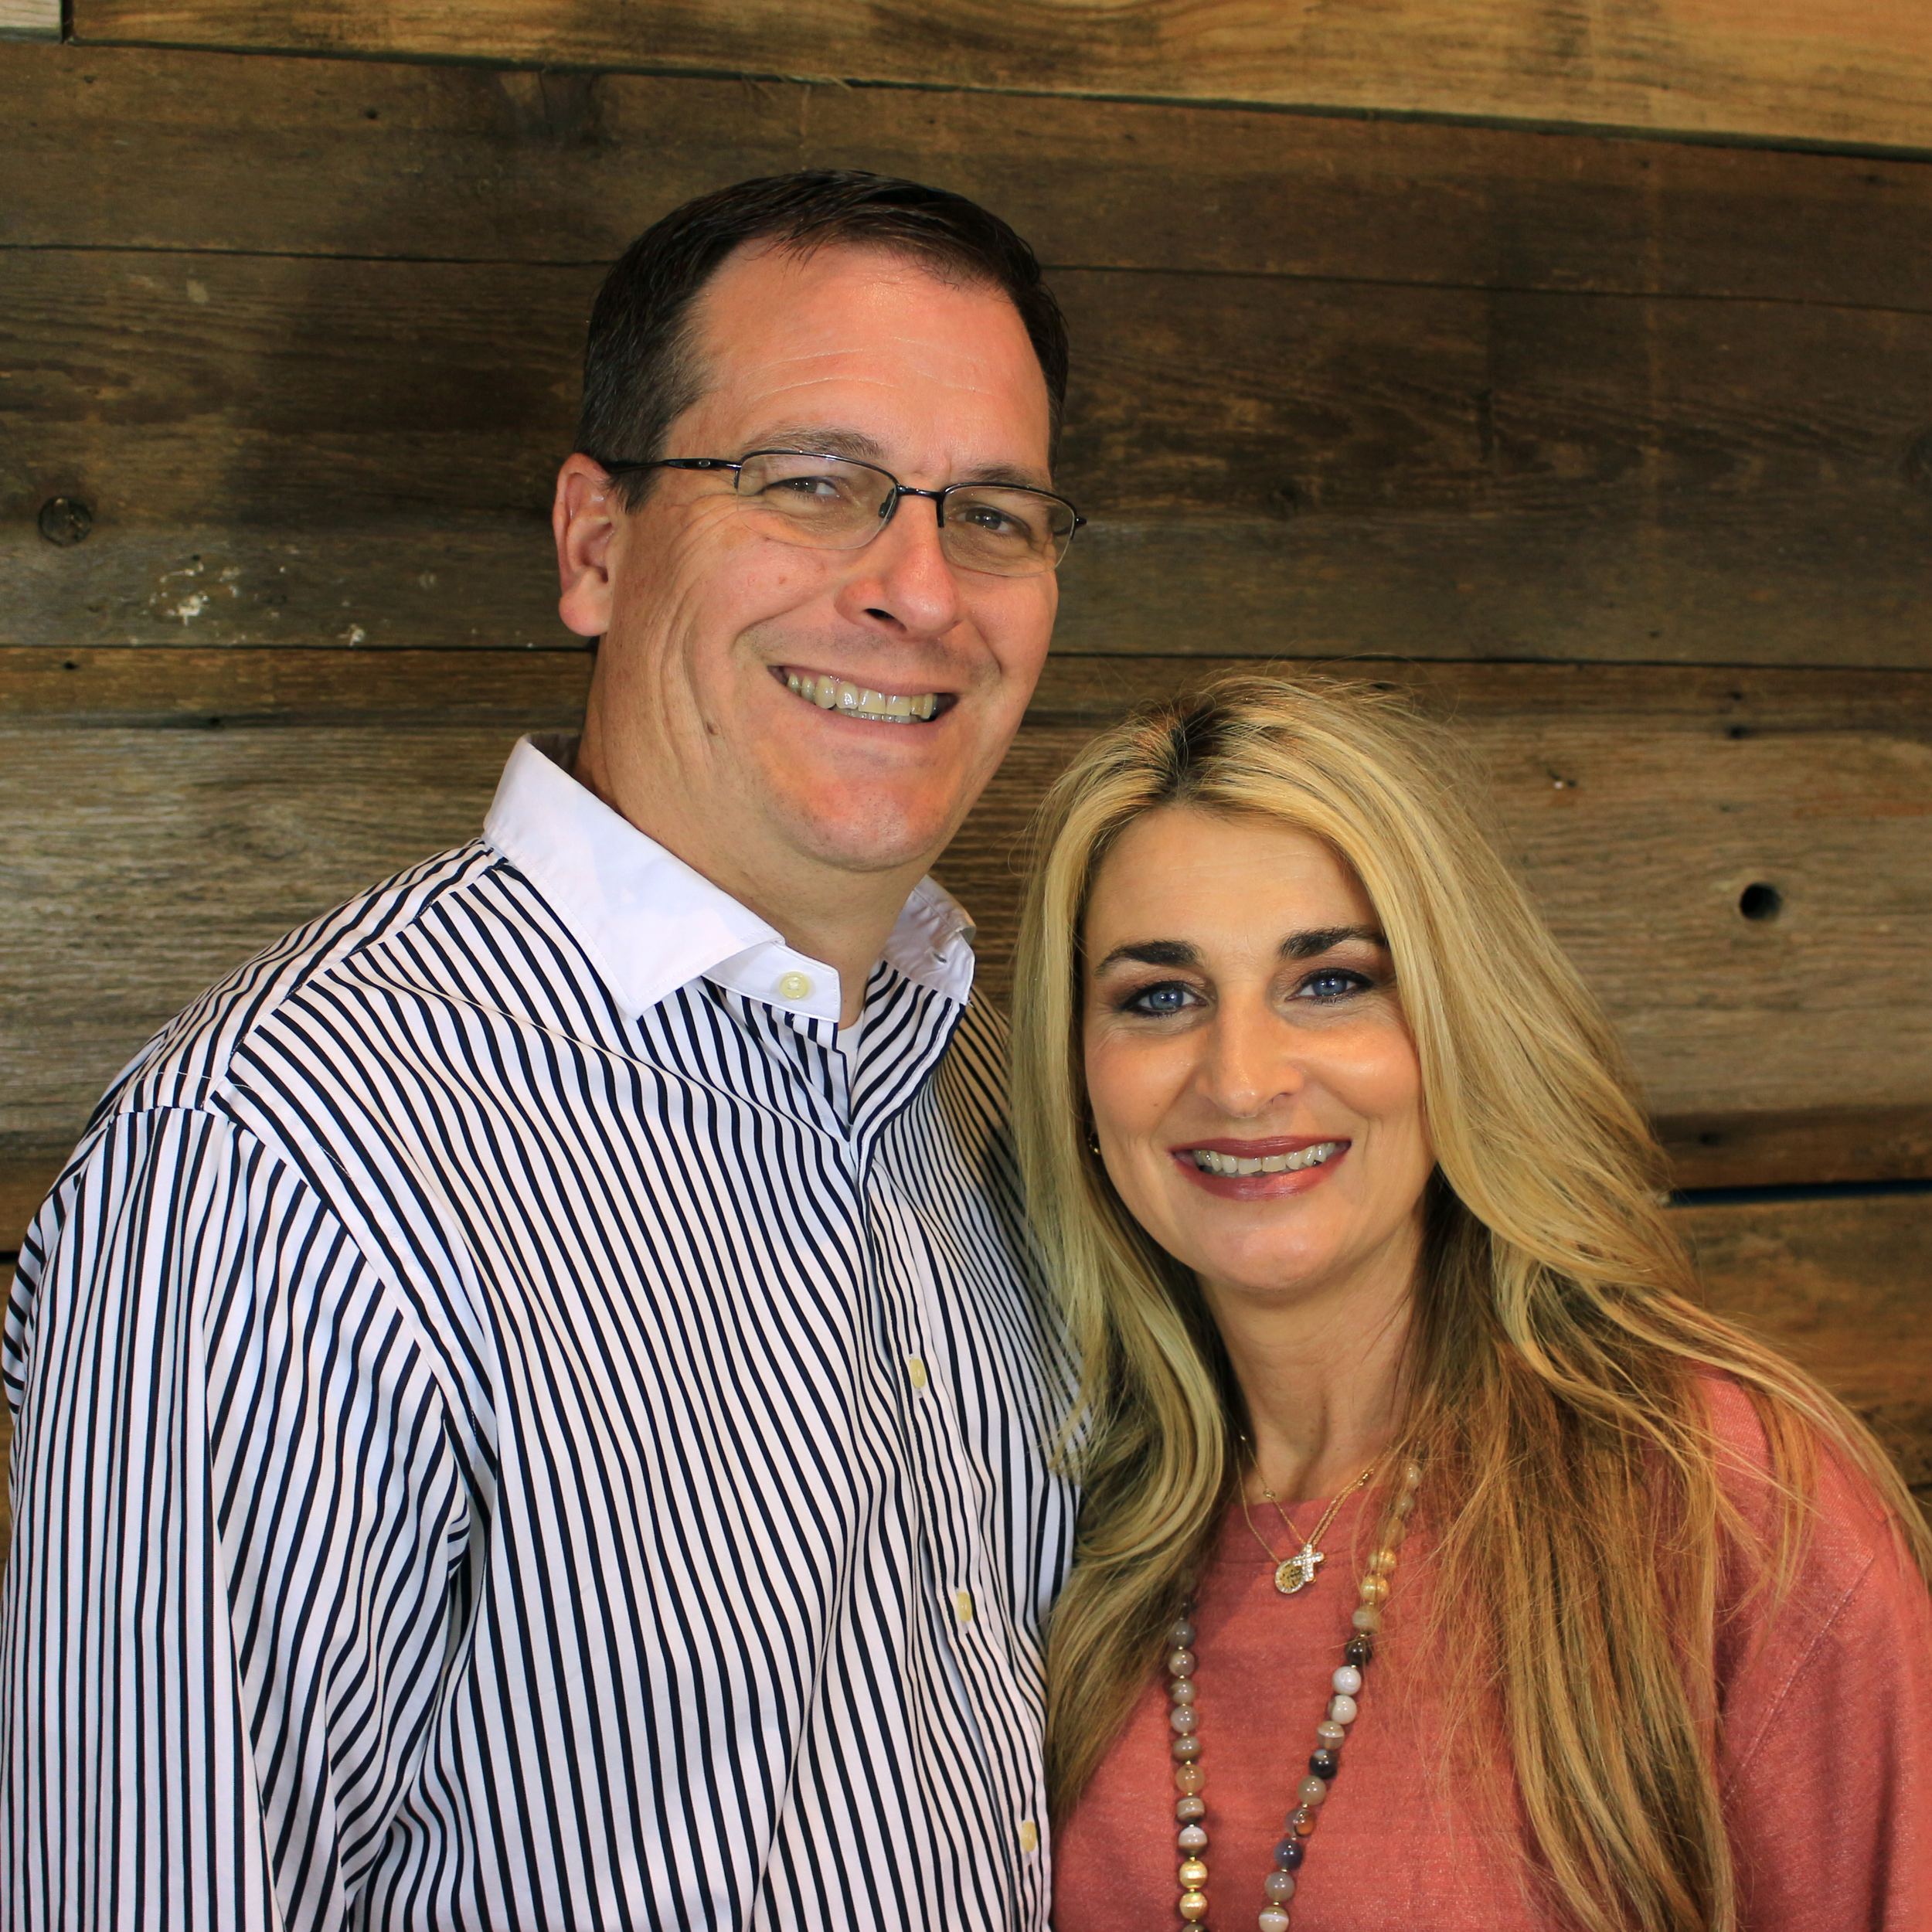 Jeff & Tammy McKneely - Jeff and Tammy's heart and call is to see Amite redeemed for the Kingdom of God, to see the Good News of the Kingdom preached to the ends of the Earth, and to see the Jewish people welcome their Messiah. They believe that this is best achieved by letting the world see how we love each other and love them. At House on the Rock, they have fostered an environment of being open and real and allowing God to be God in our lives.